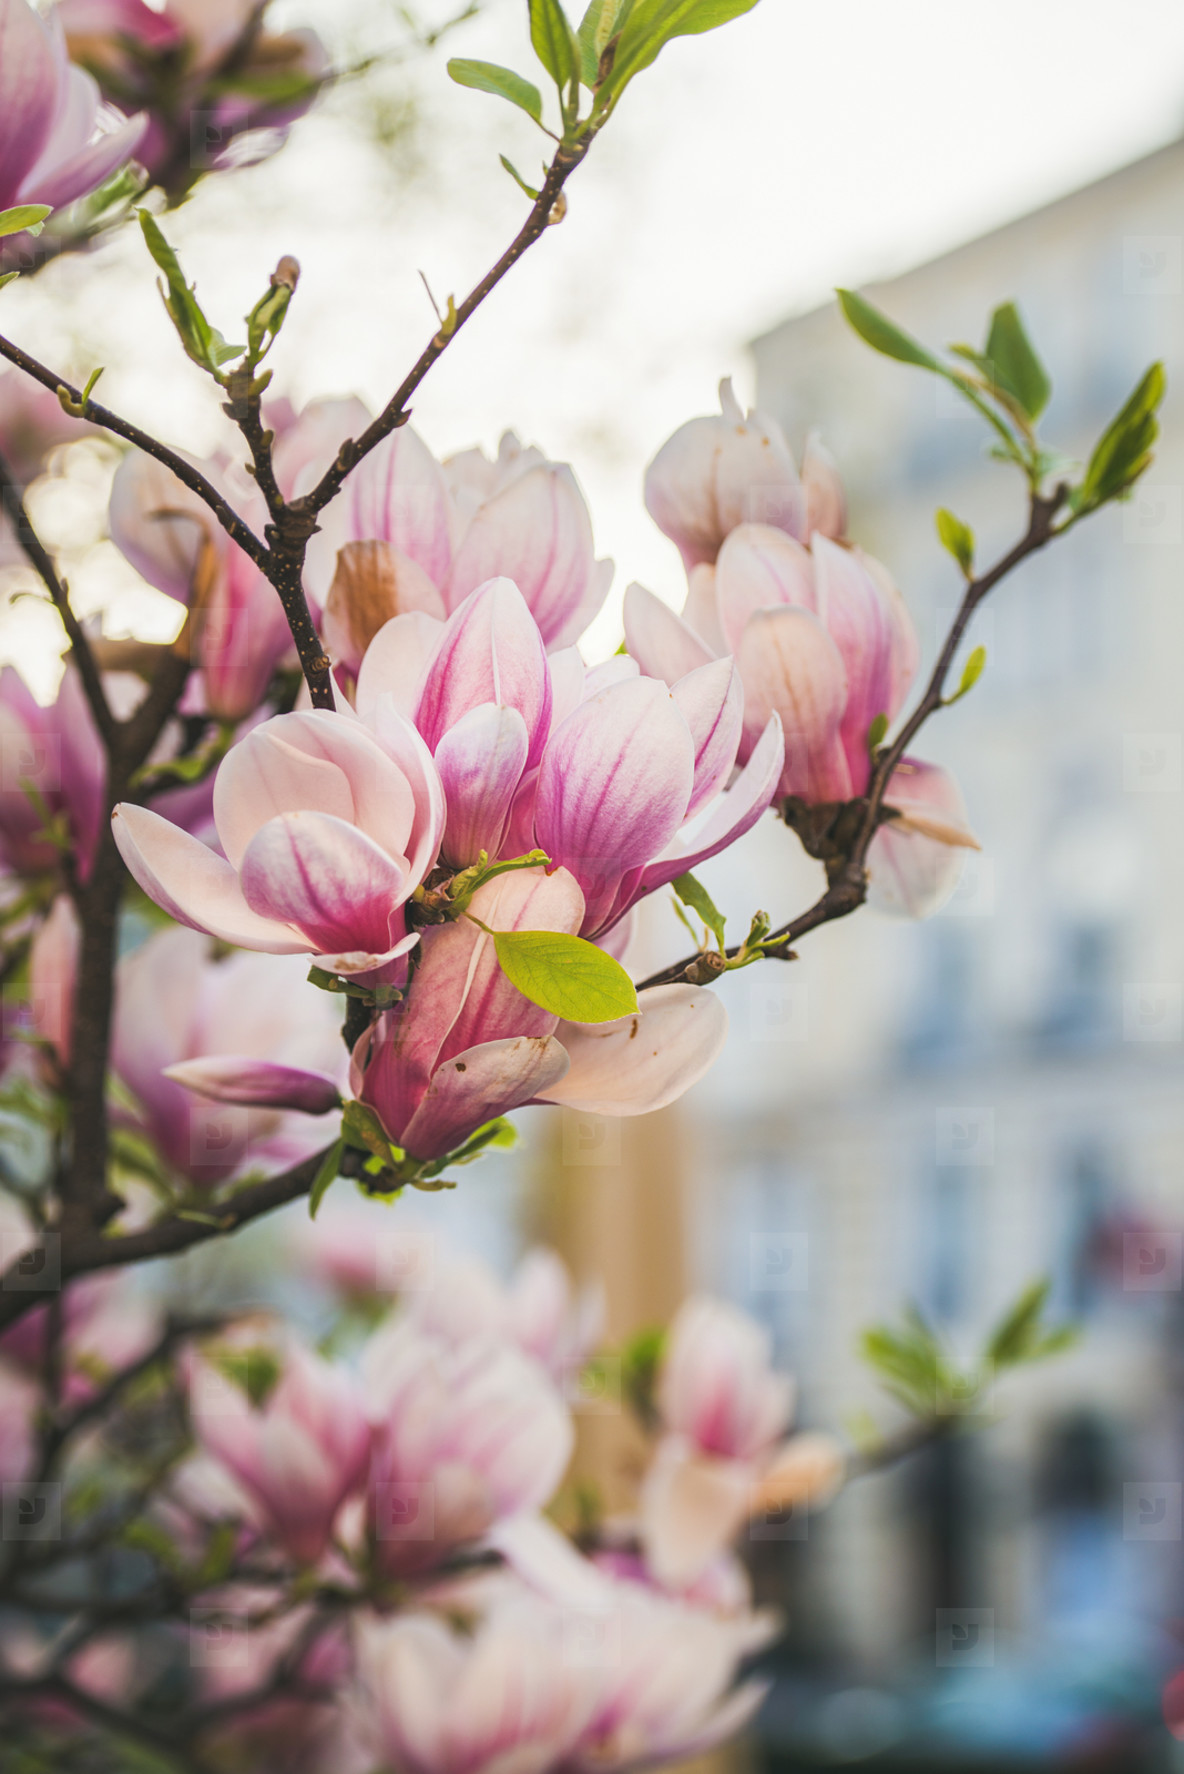 Blooming magnolia tree with flowers